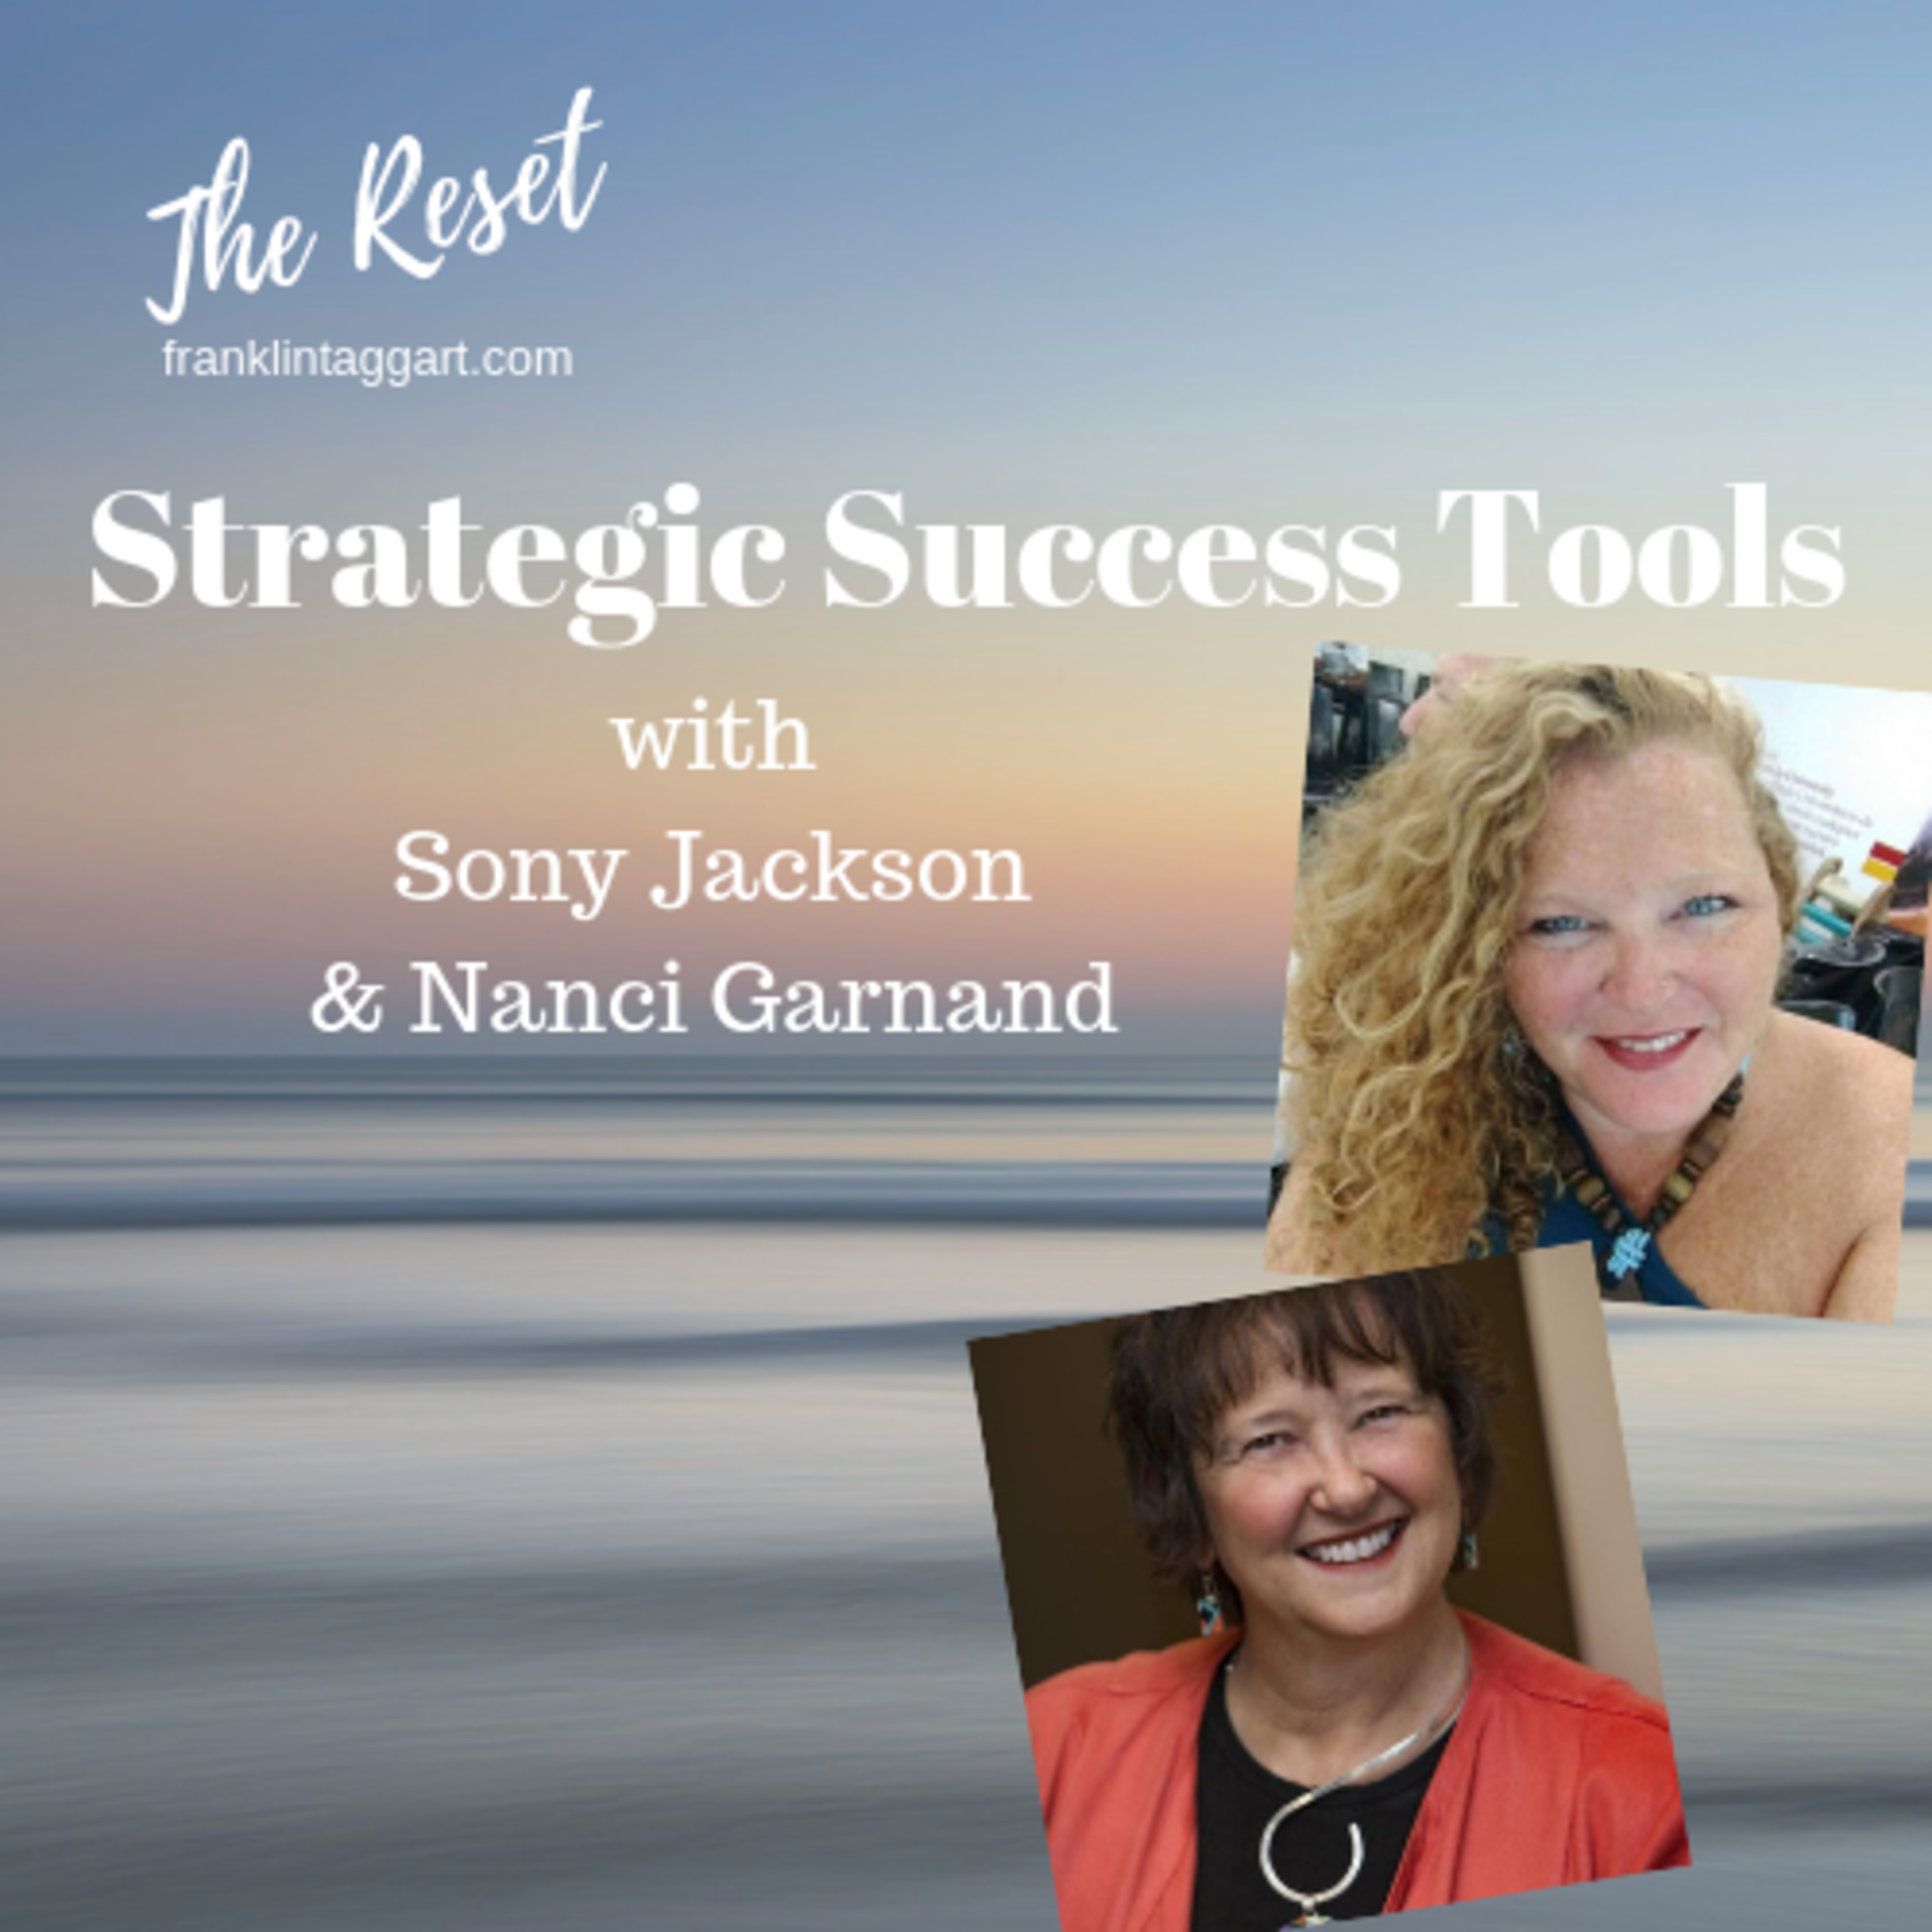 Strategic Success Tools with Nanci Garnand and Sony Jackson